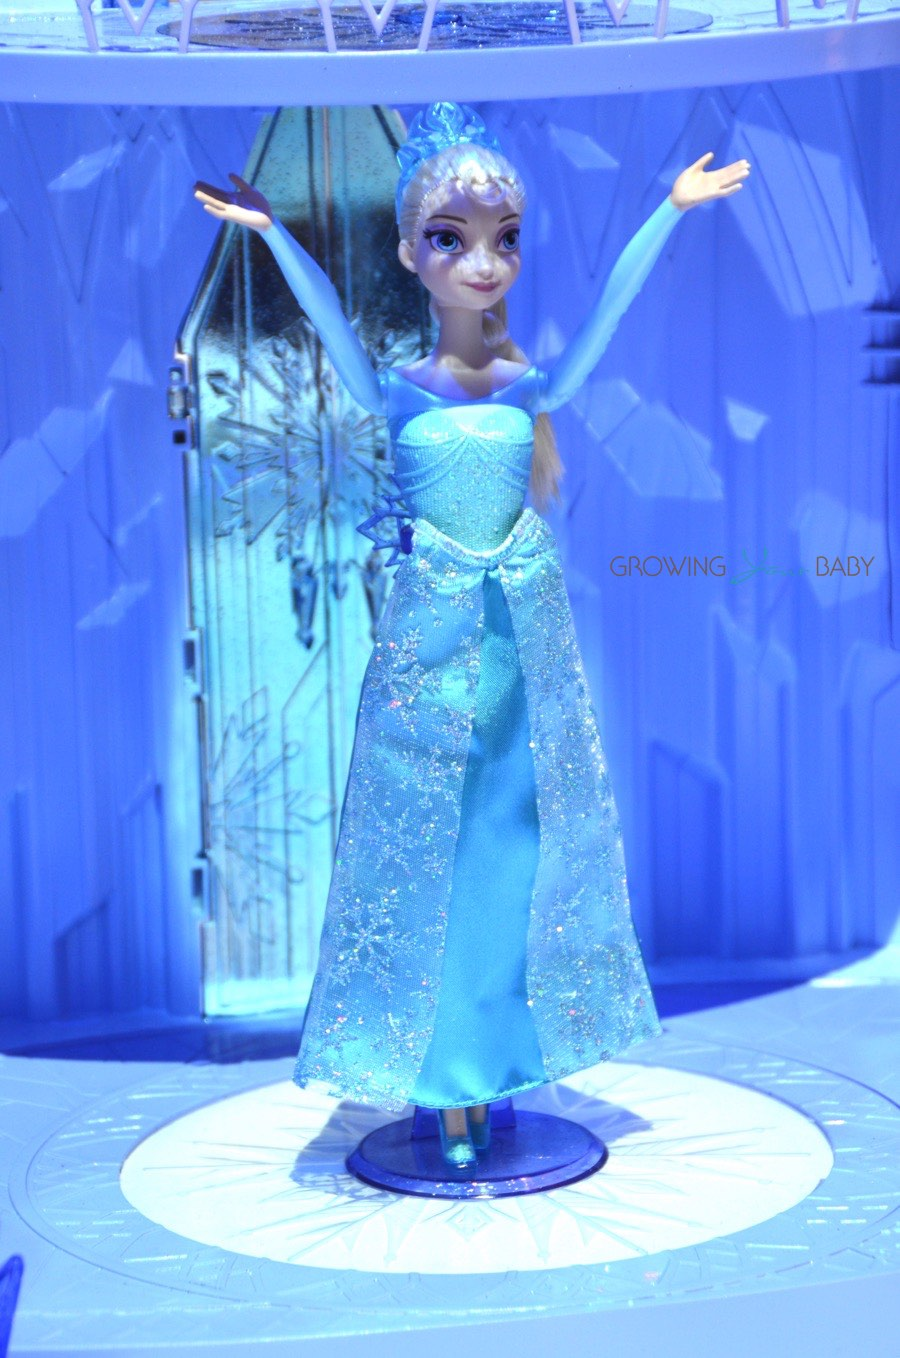 Disney's Frozen Ice Castle by Mattel with elsa - Growing Your Baby